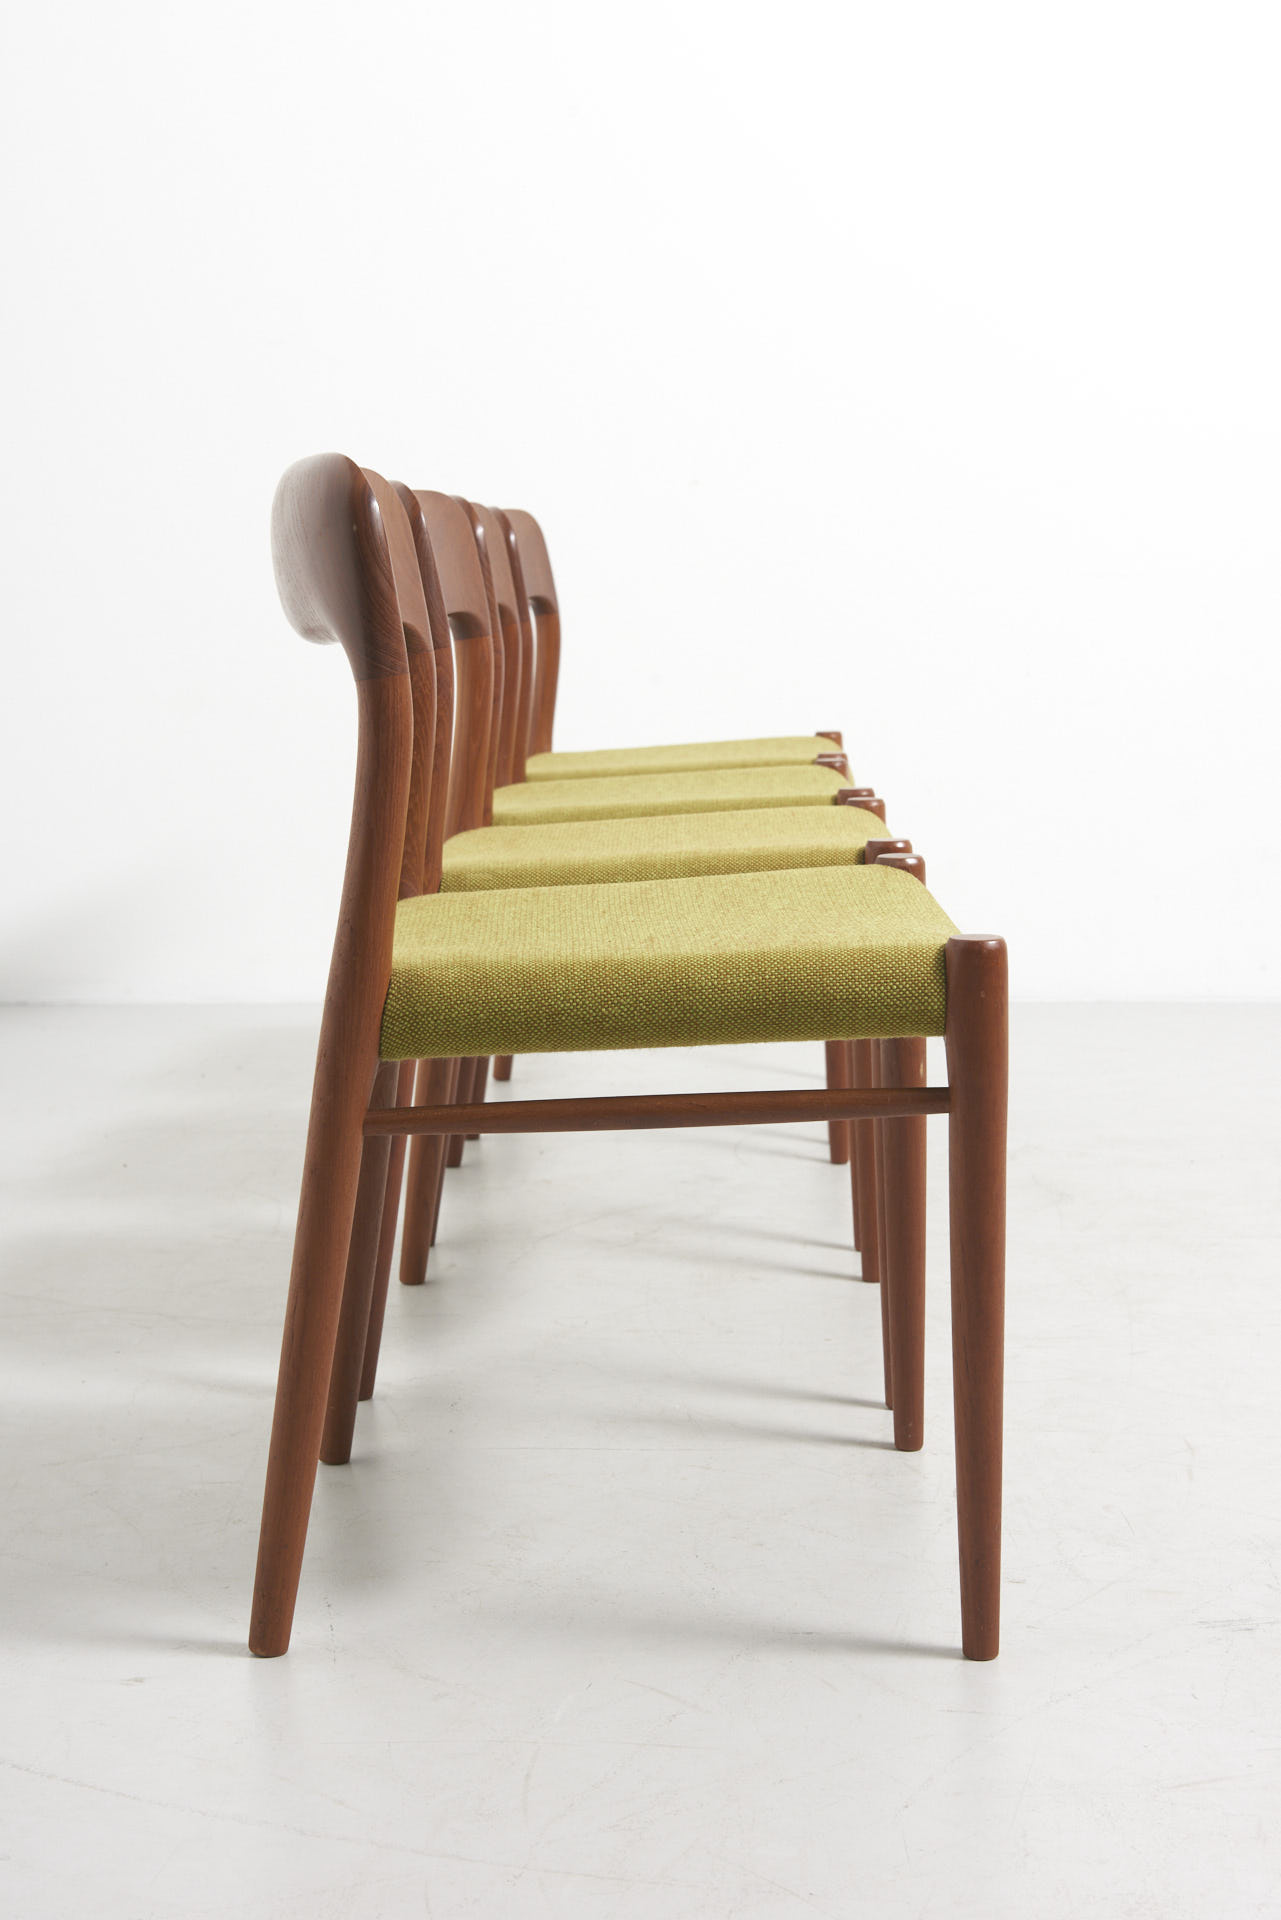 modestfurniture-vintage-2846-niels-moller-dining-chairs-model-7503